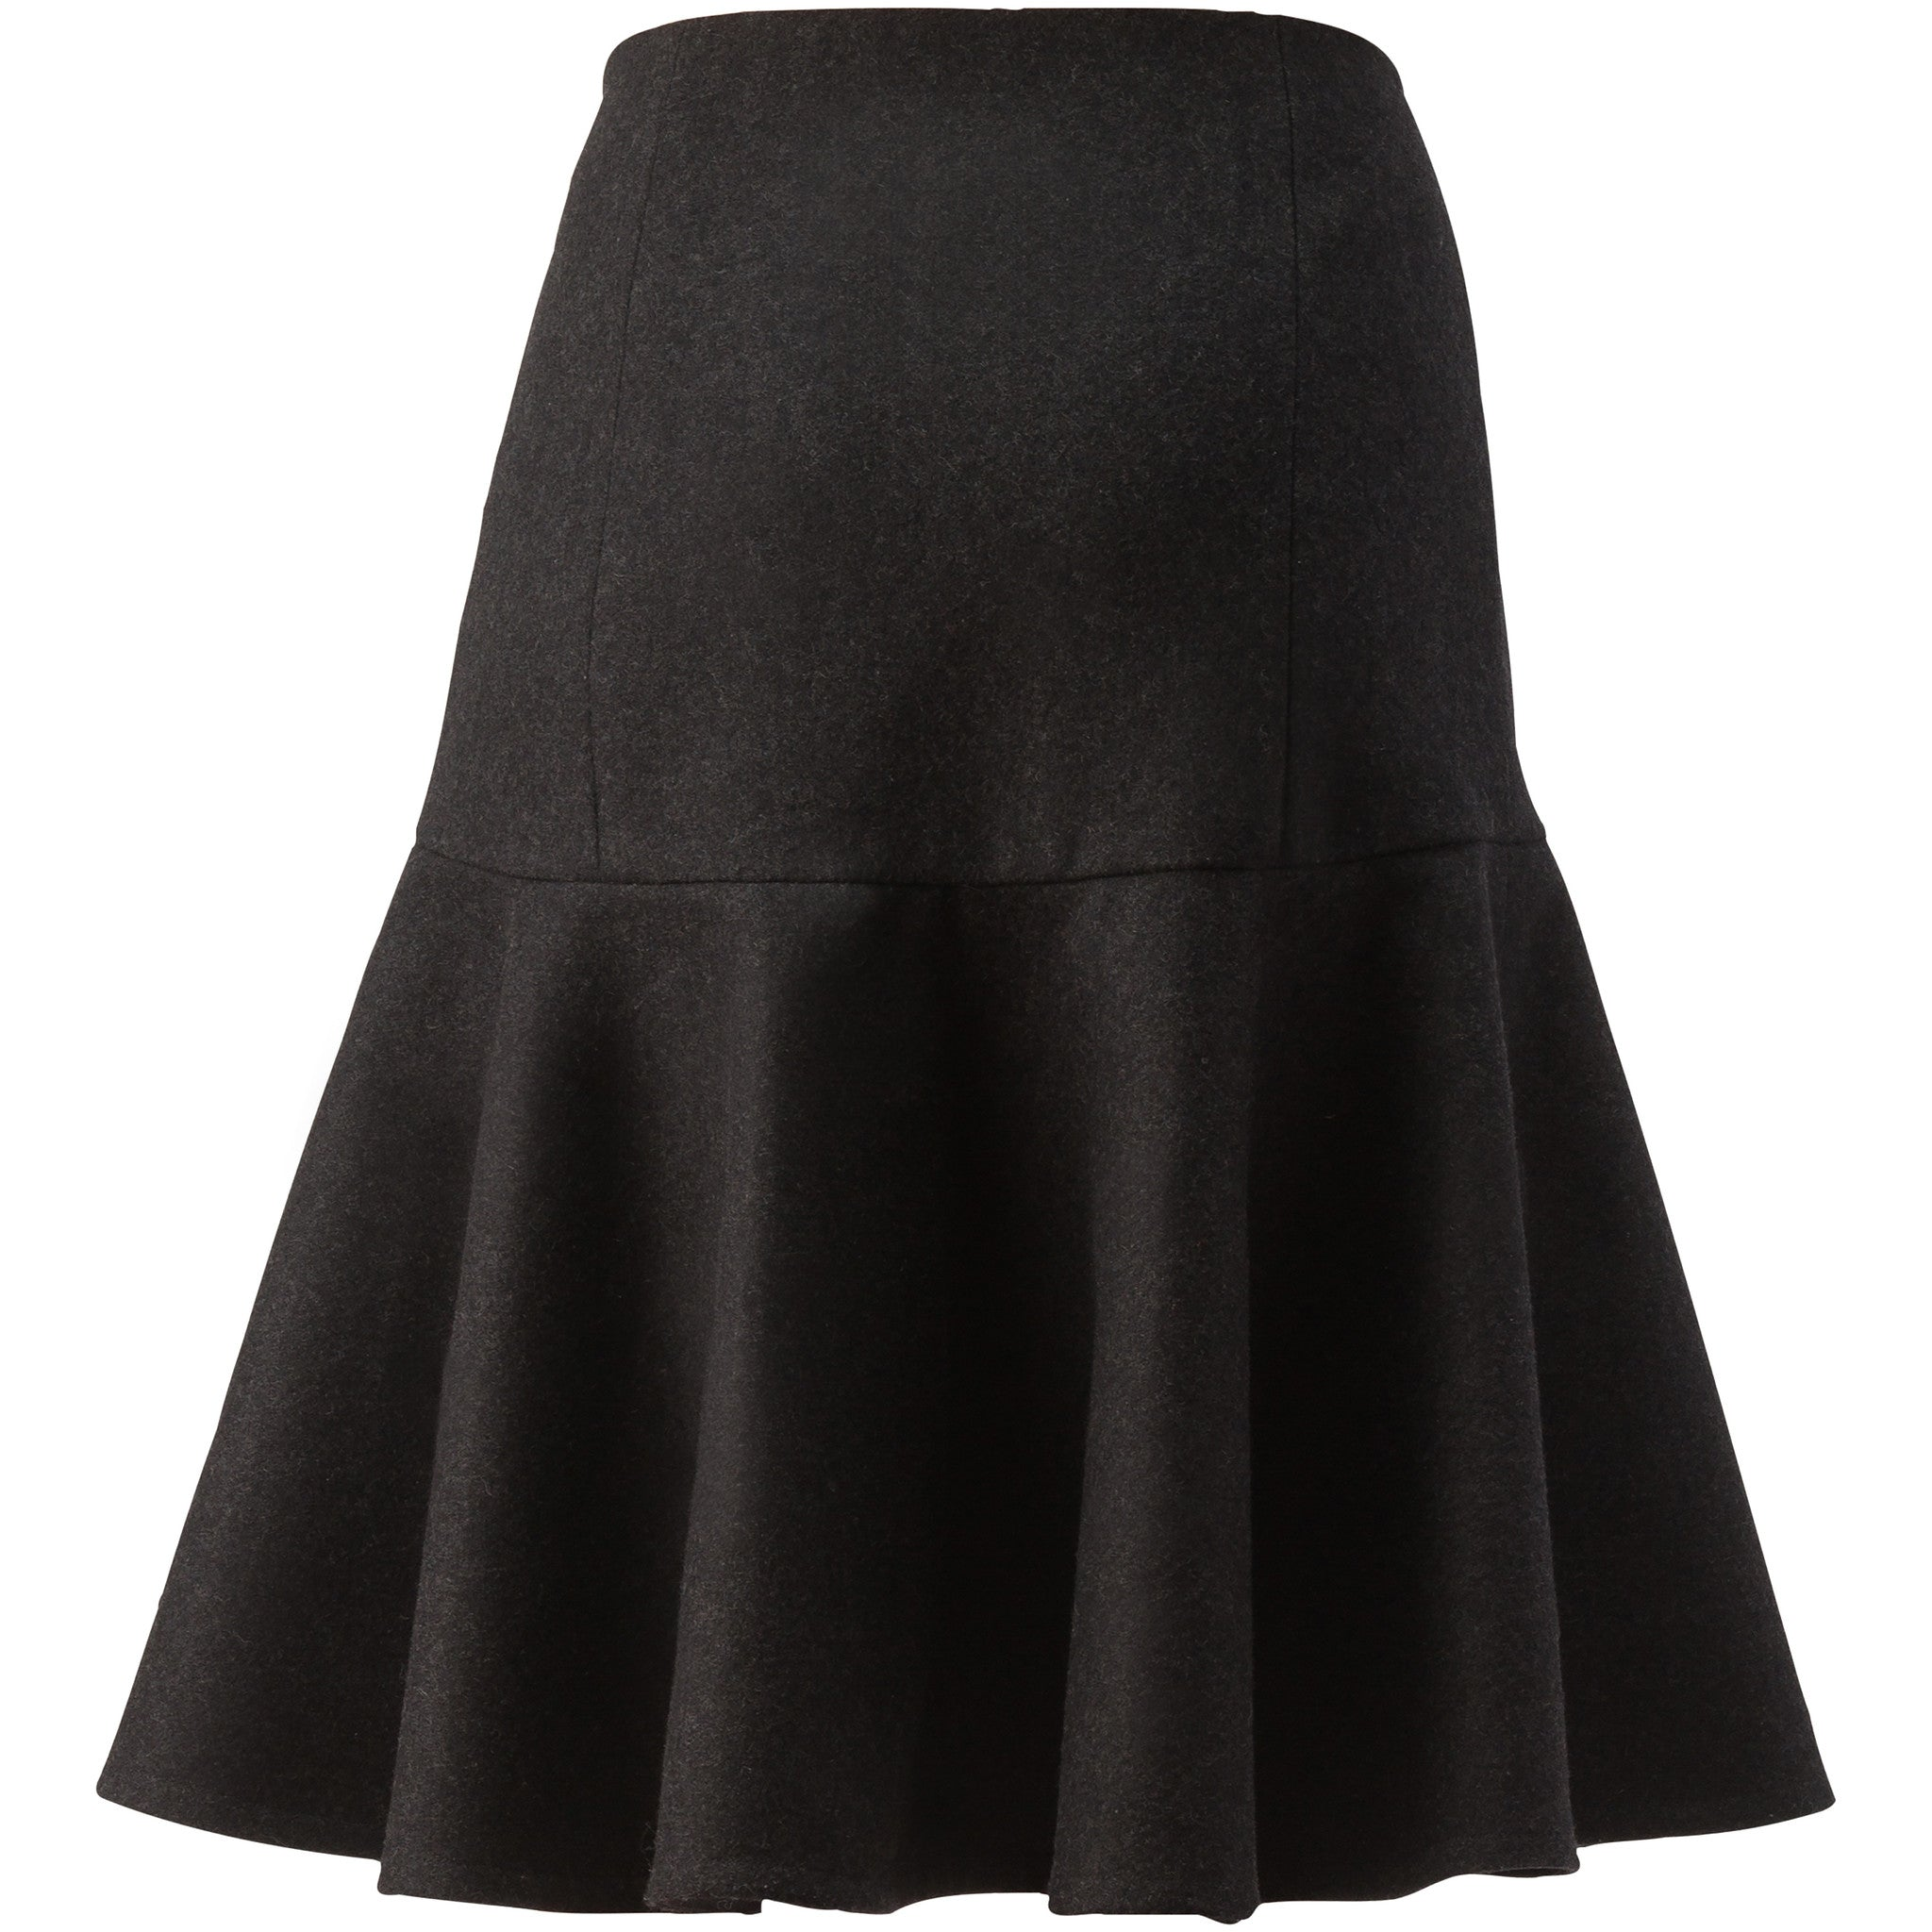 Charcoal Flared Wool Skirt